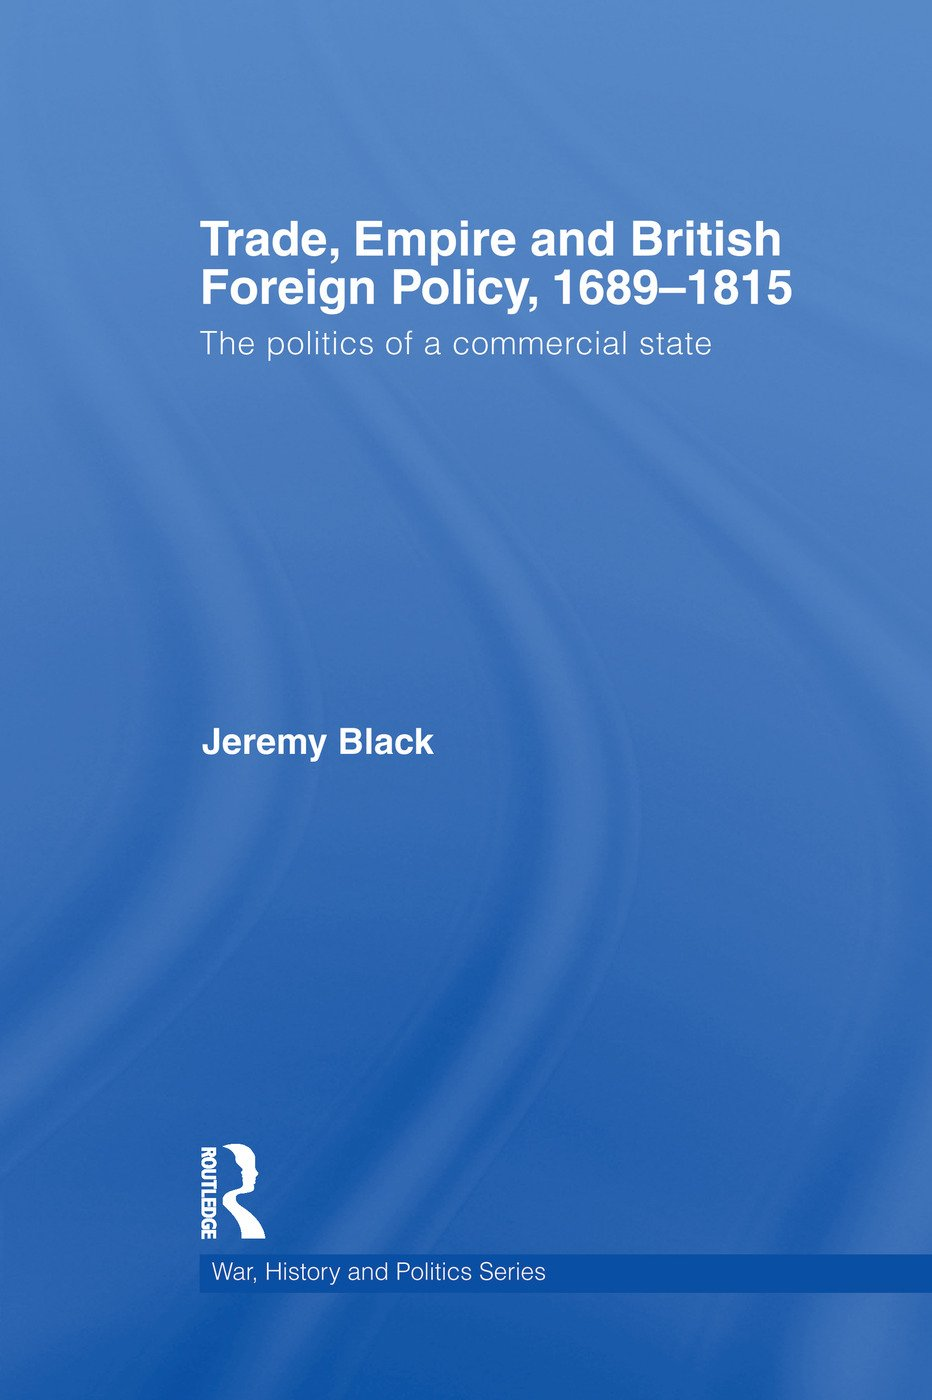 Trade, Empire and British Foreign Policy, 1689-1815: Politics of a Commercial State book cover